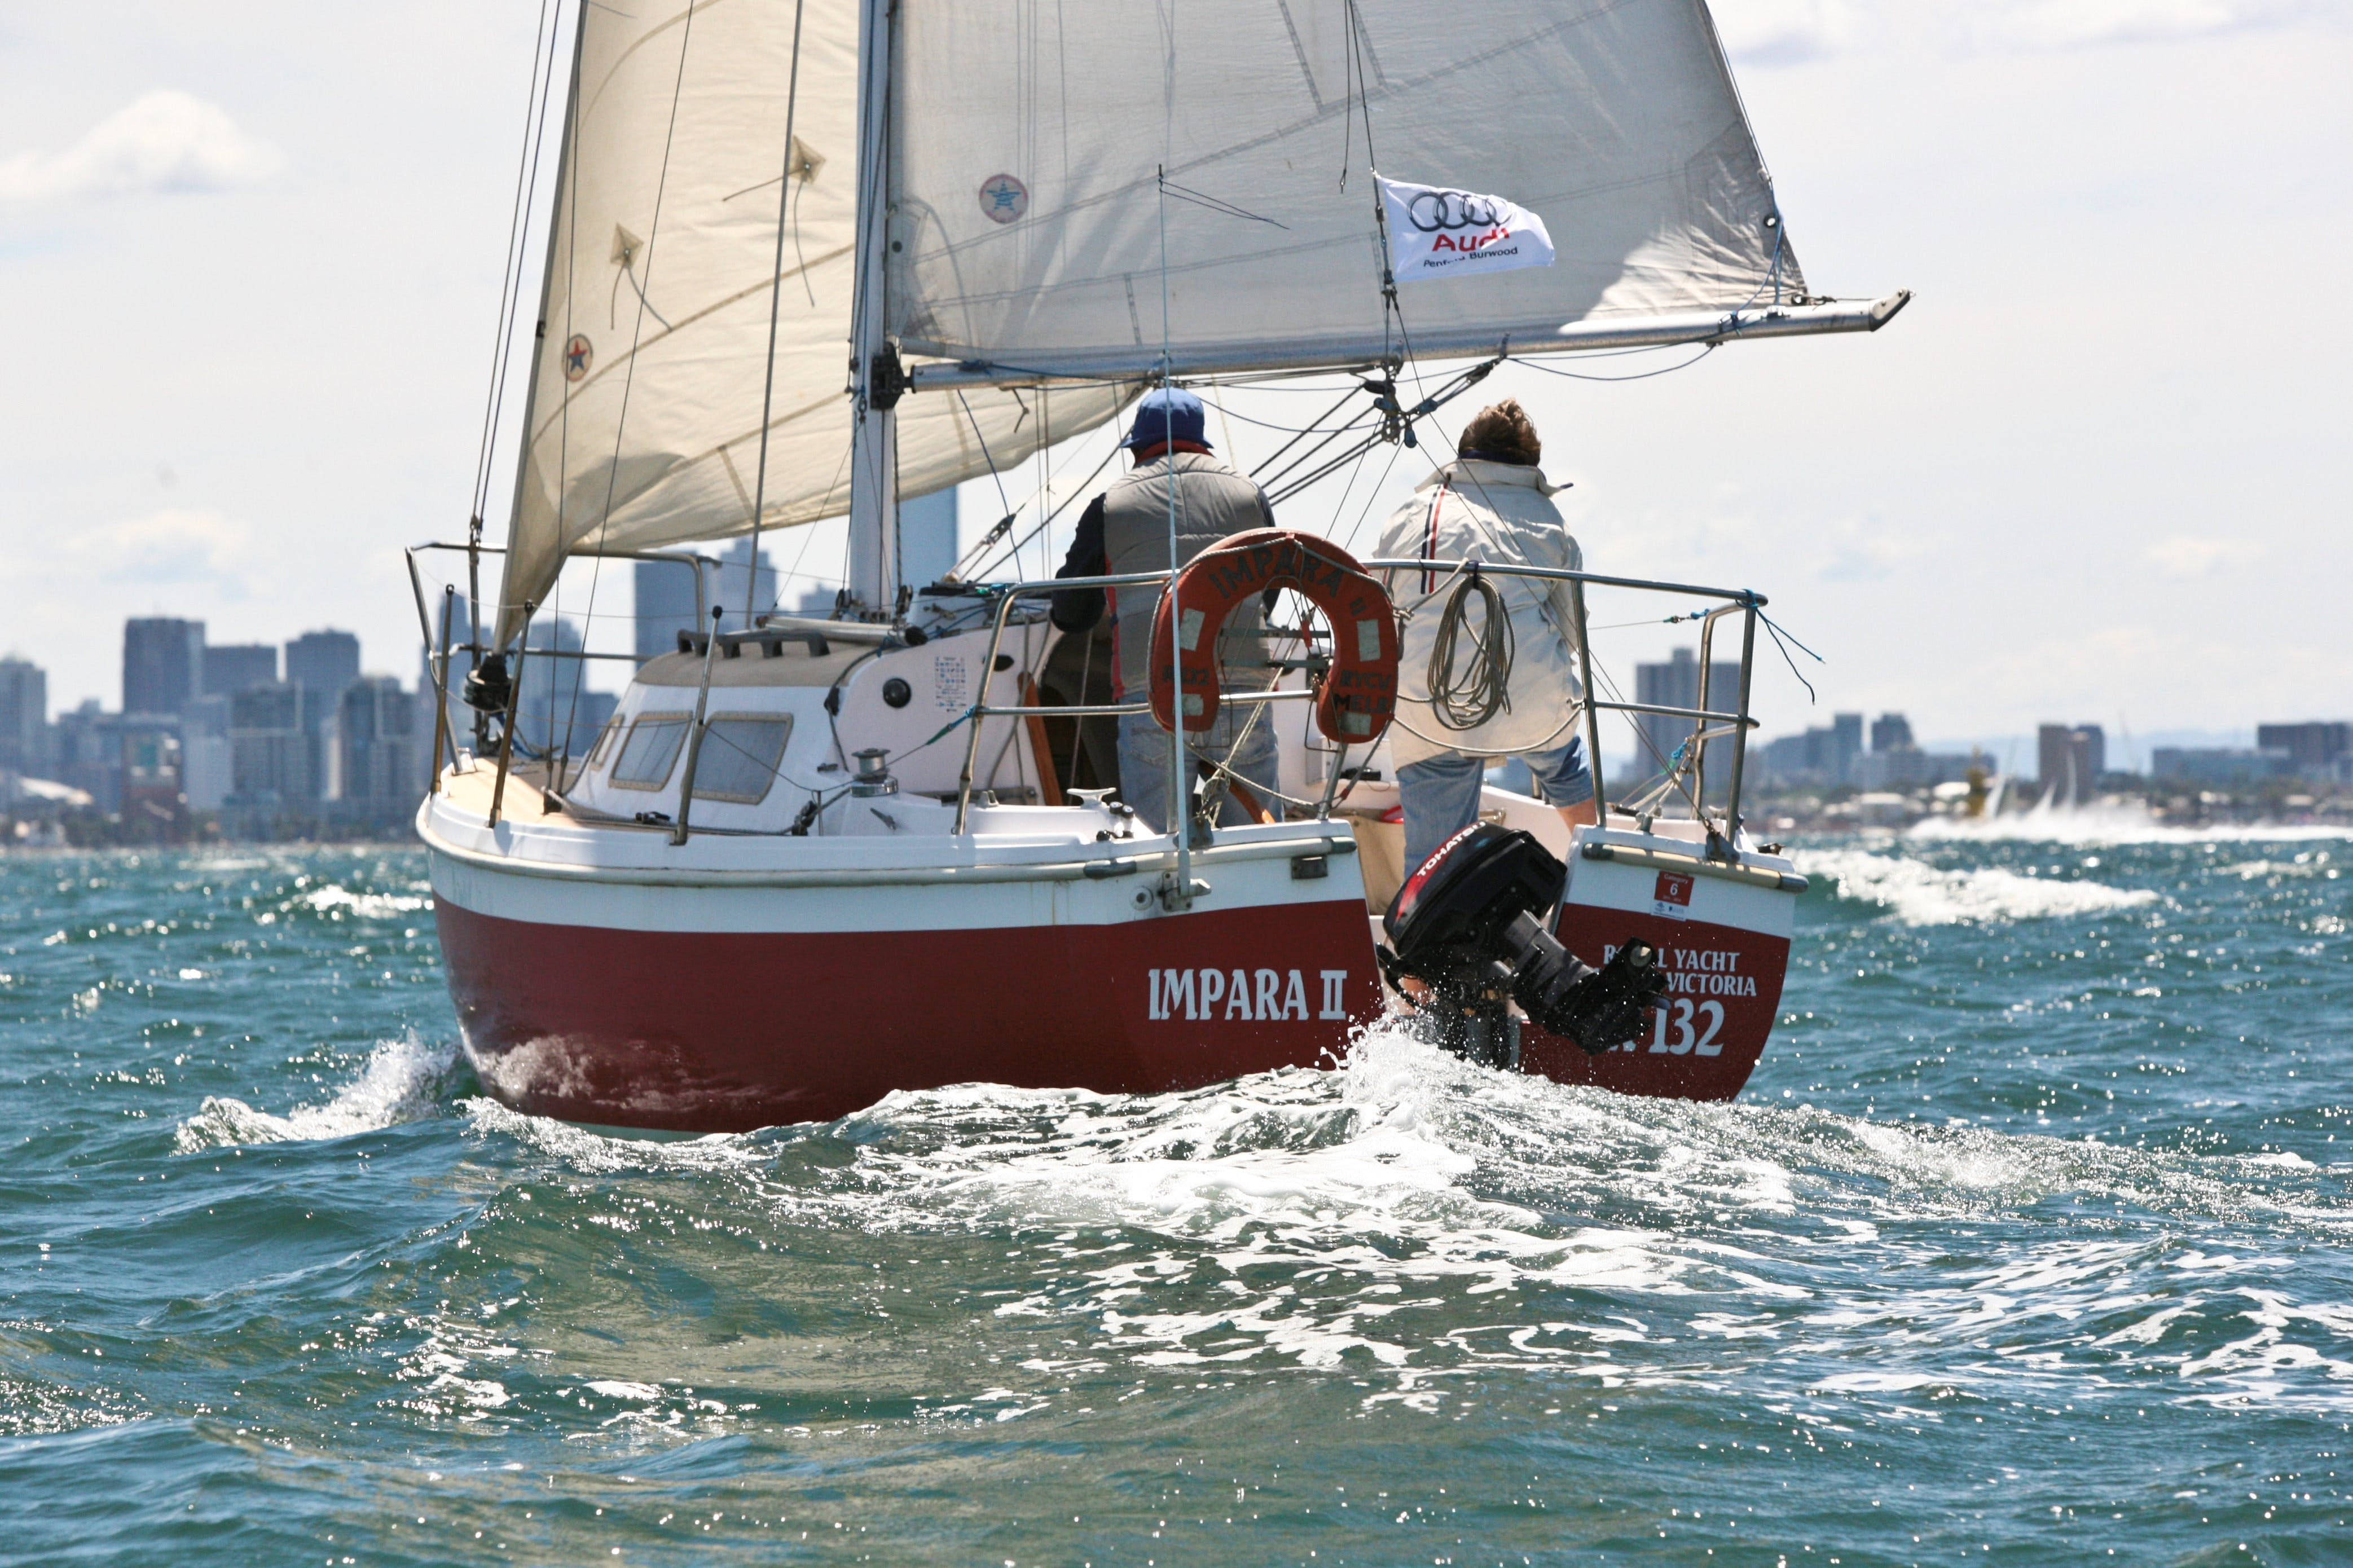 Royal Yacht Club Of Victoria - Attractions